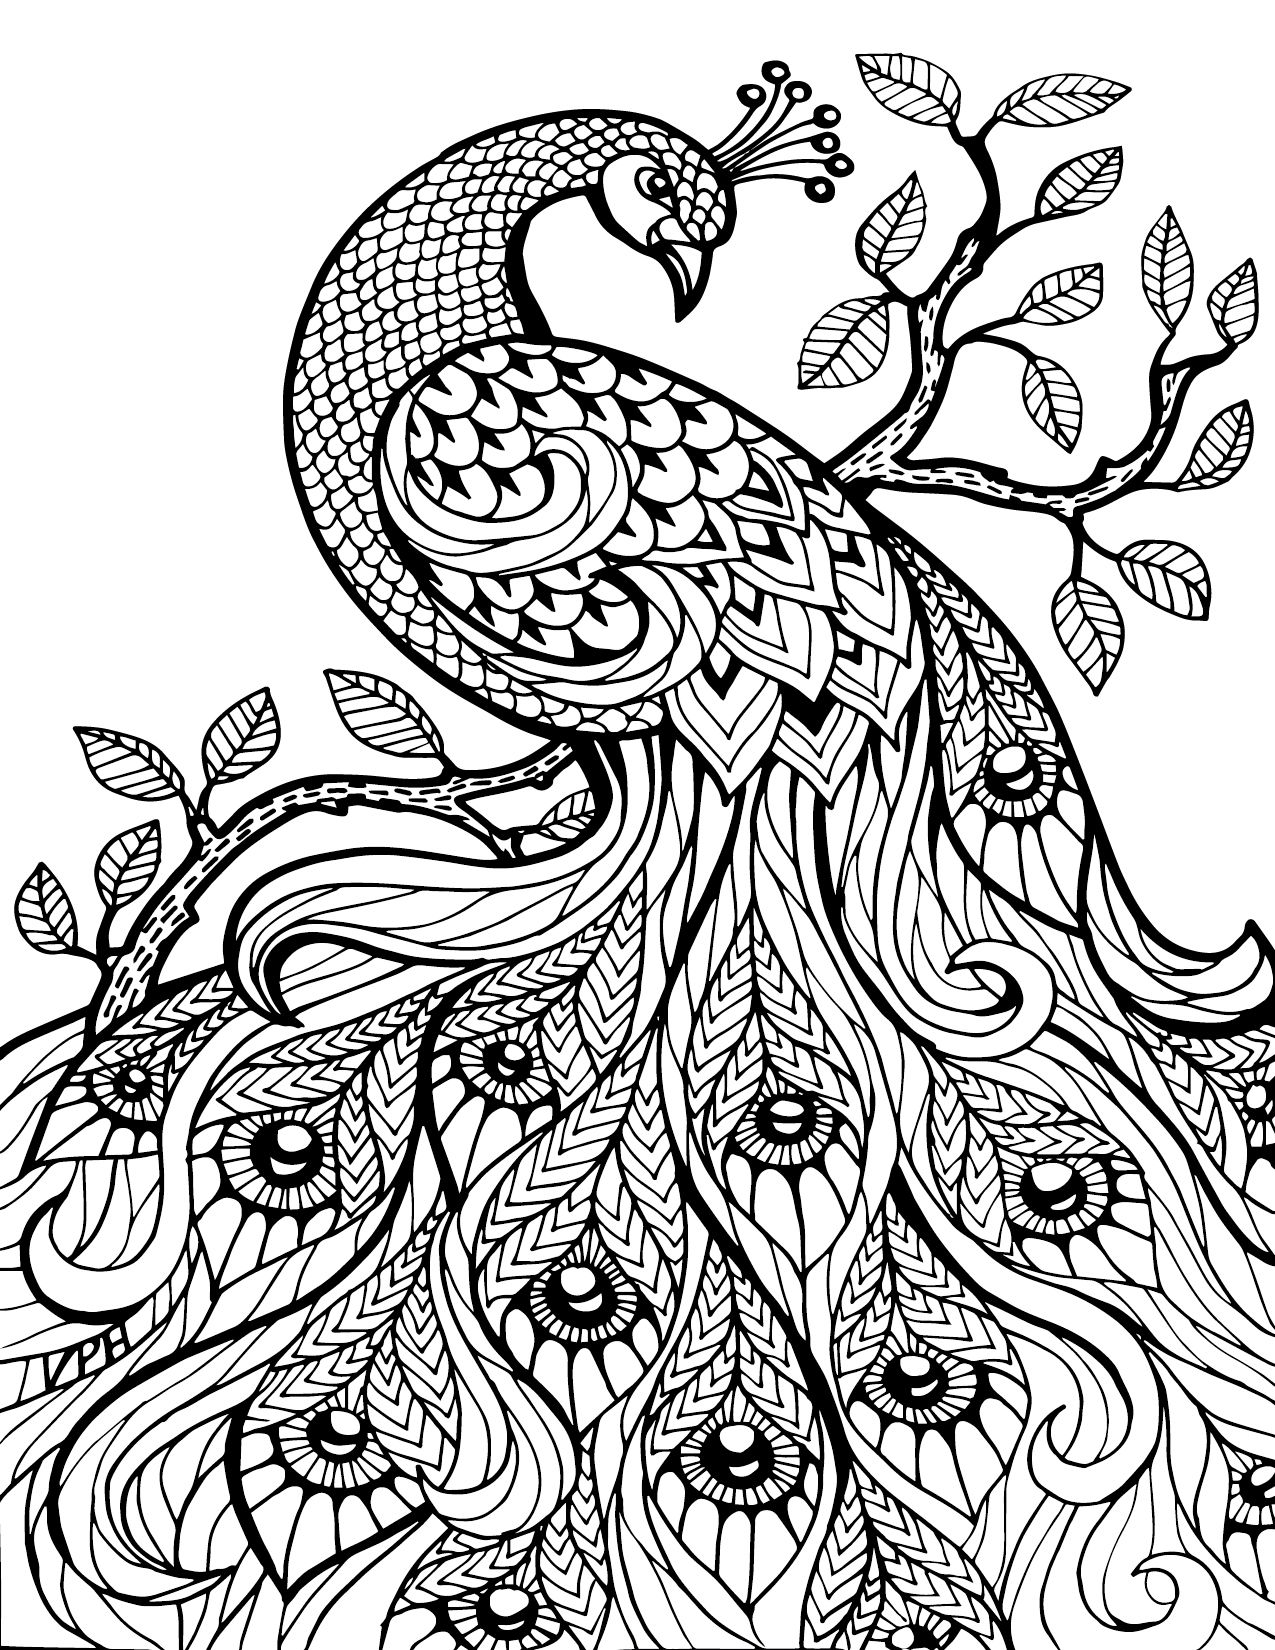 Publishers for adult coloring books - Free Printable Coloring Pages For Adults Only Image 36 Art Davlin Publishing